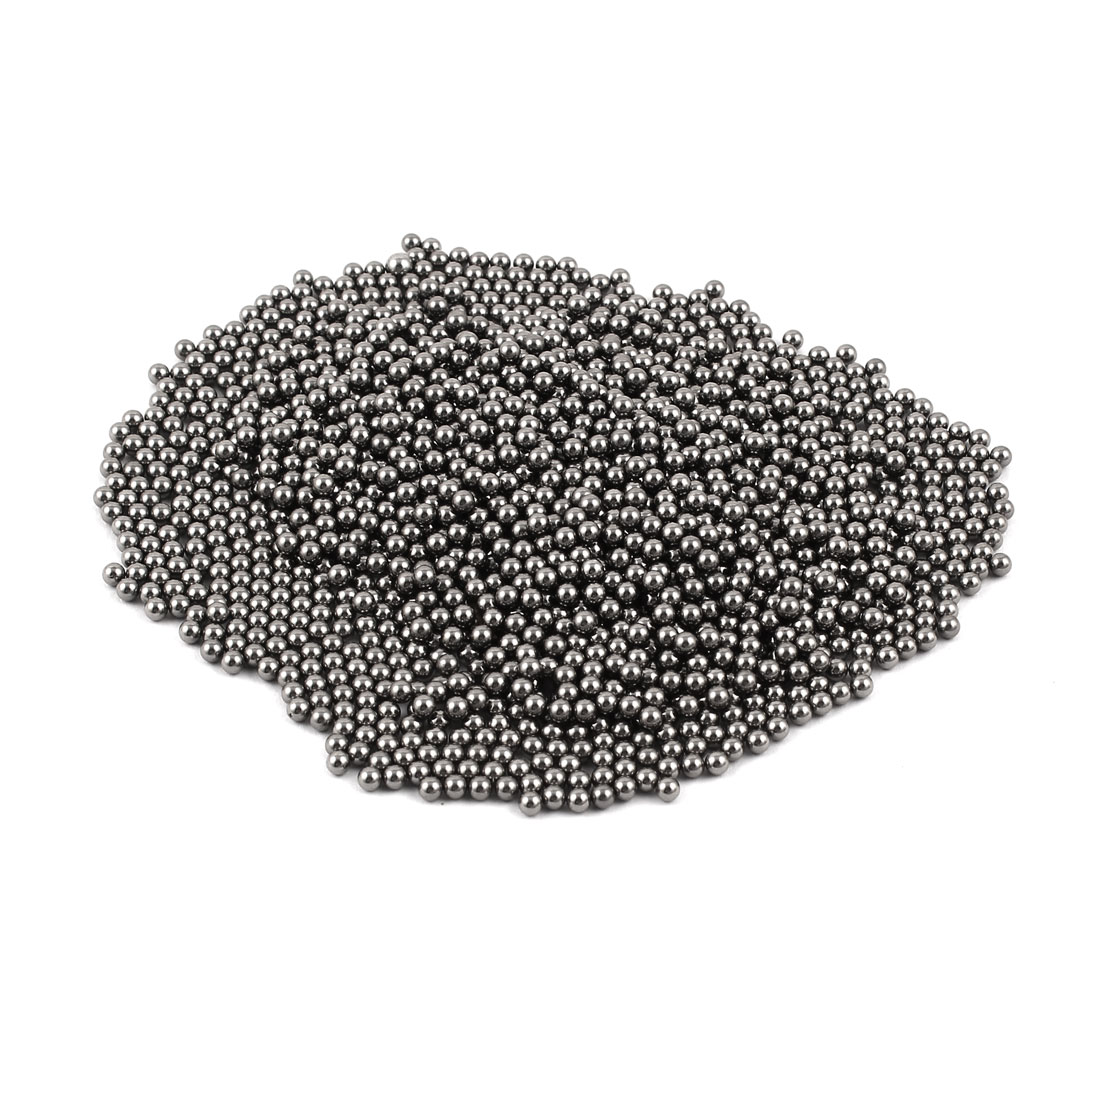 Bicycle Repair 3.5mm Diameter Silver Tone Steel Bearing Ball 1100 Pcs